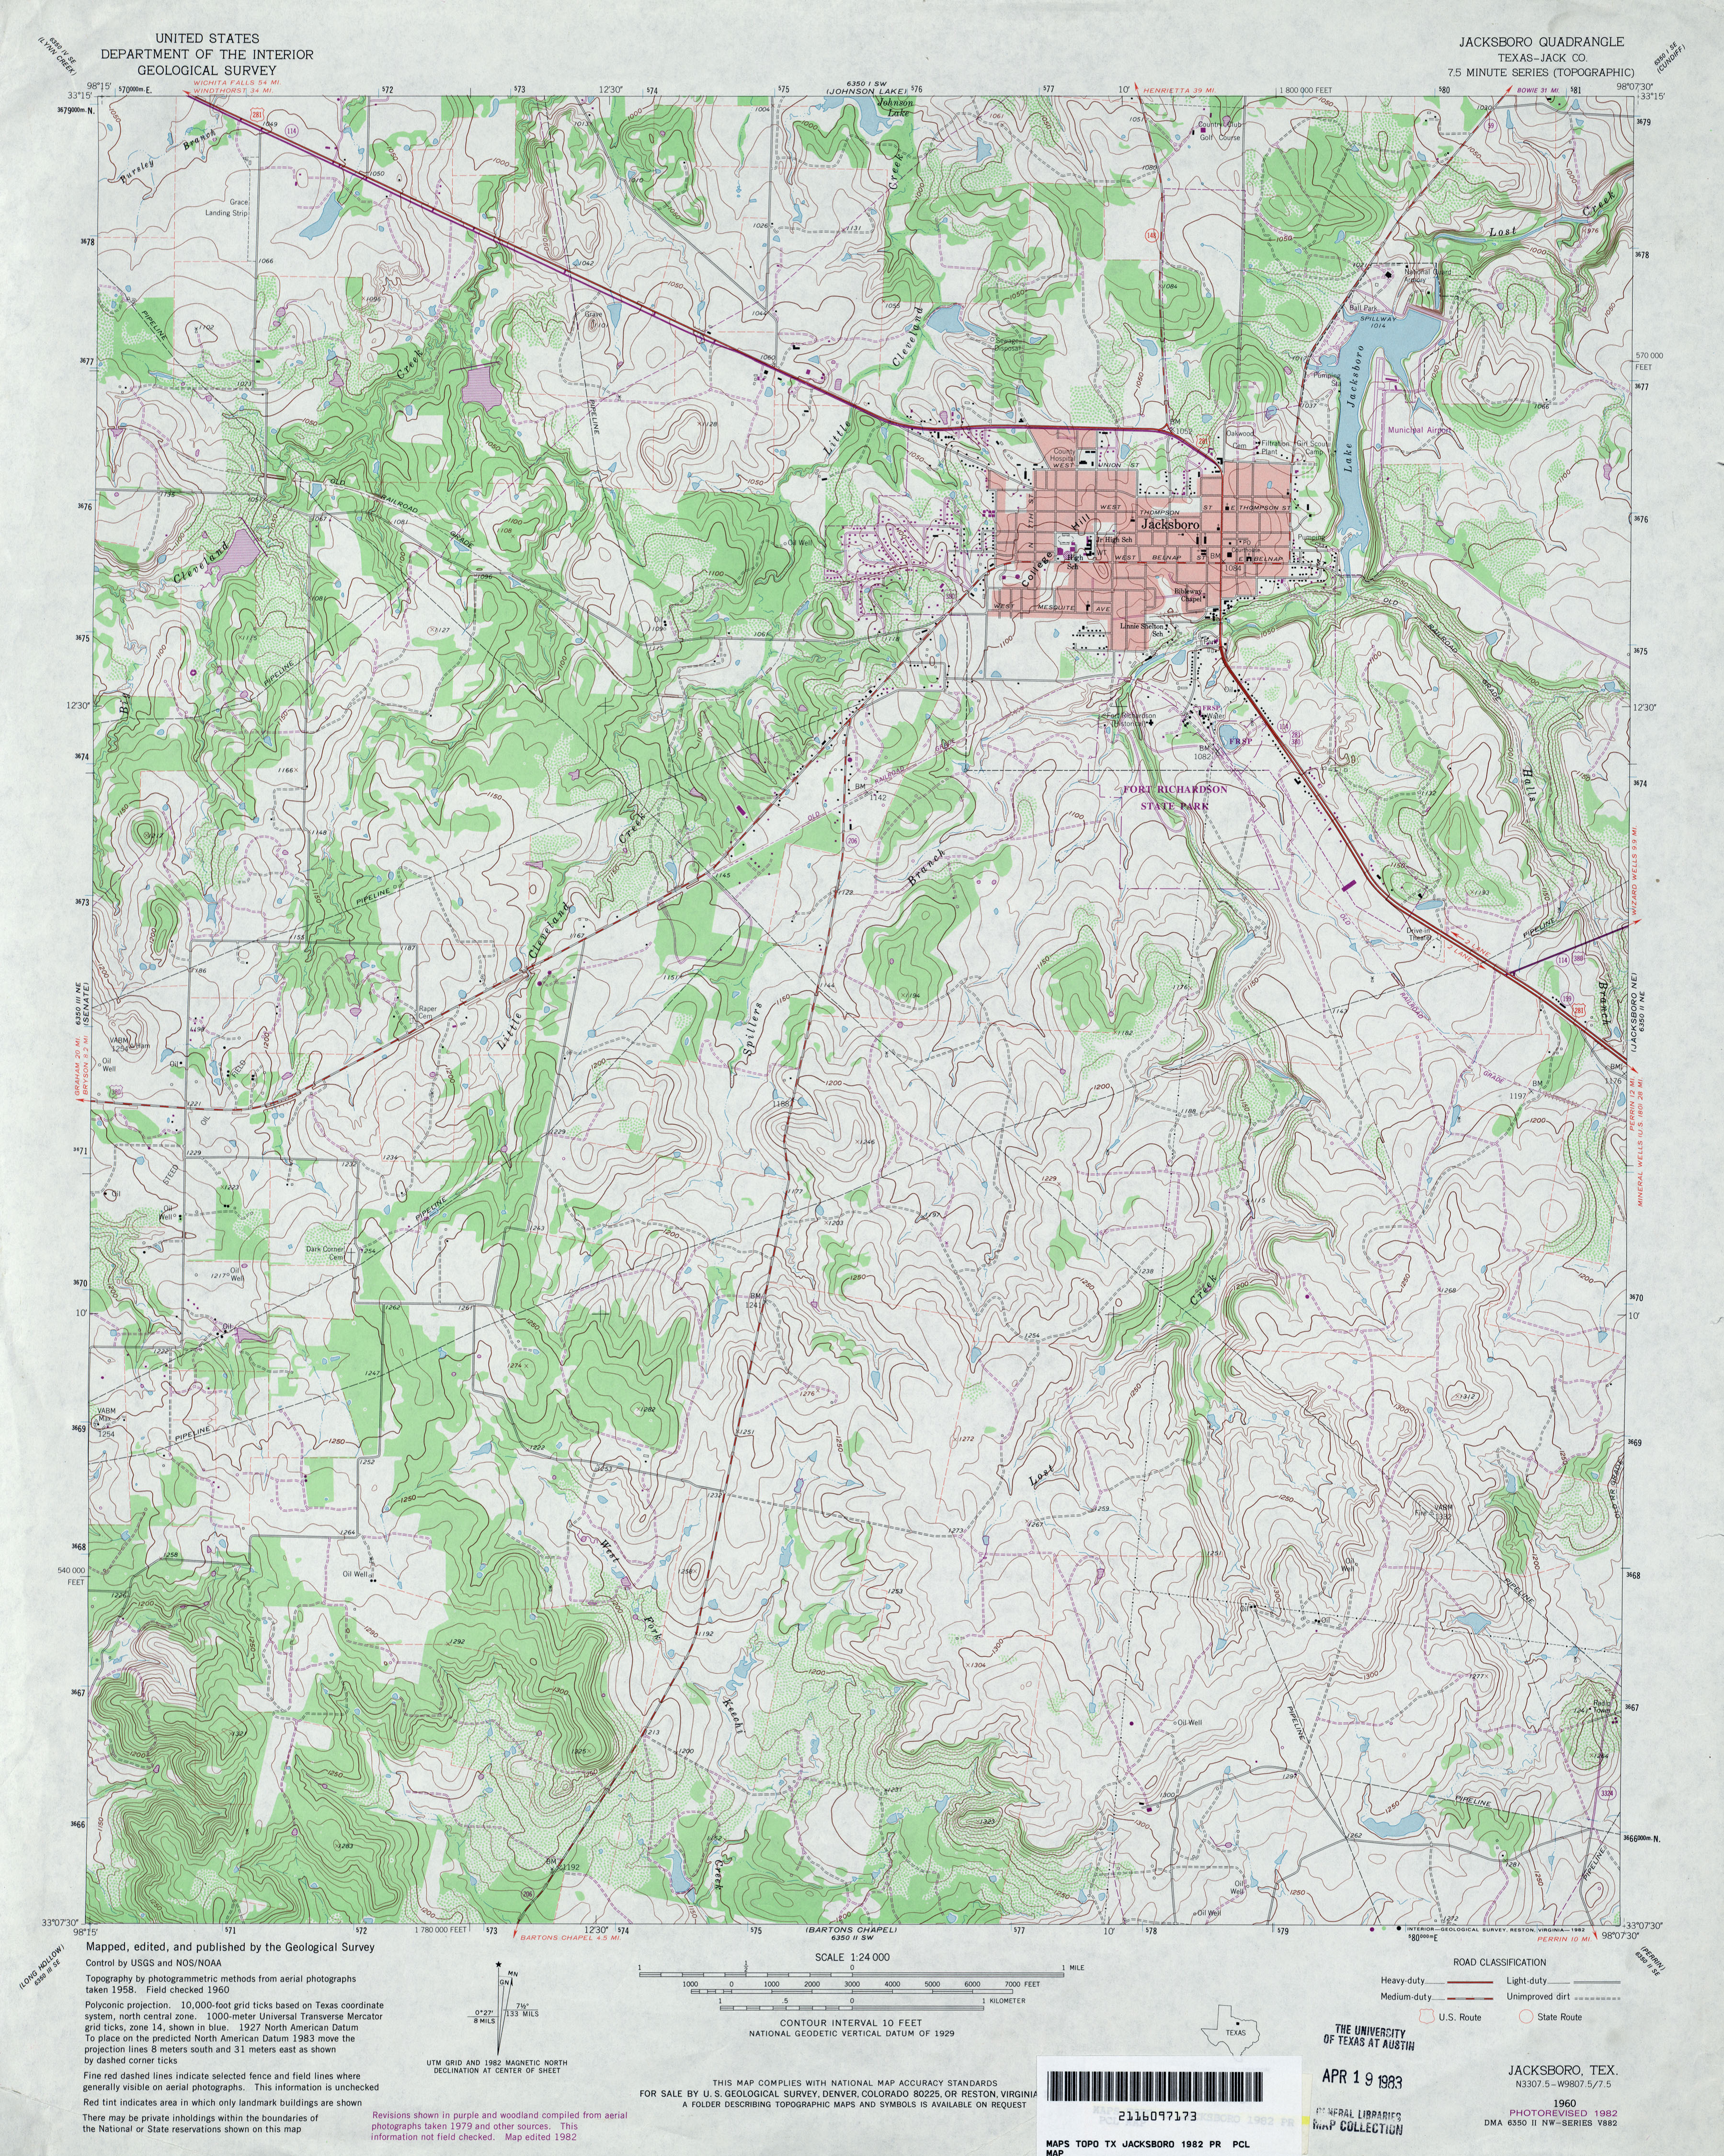 Texas Topographic Maps - Perry-Castañeda Map Collection - Ut Library - Jack County Texas Map